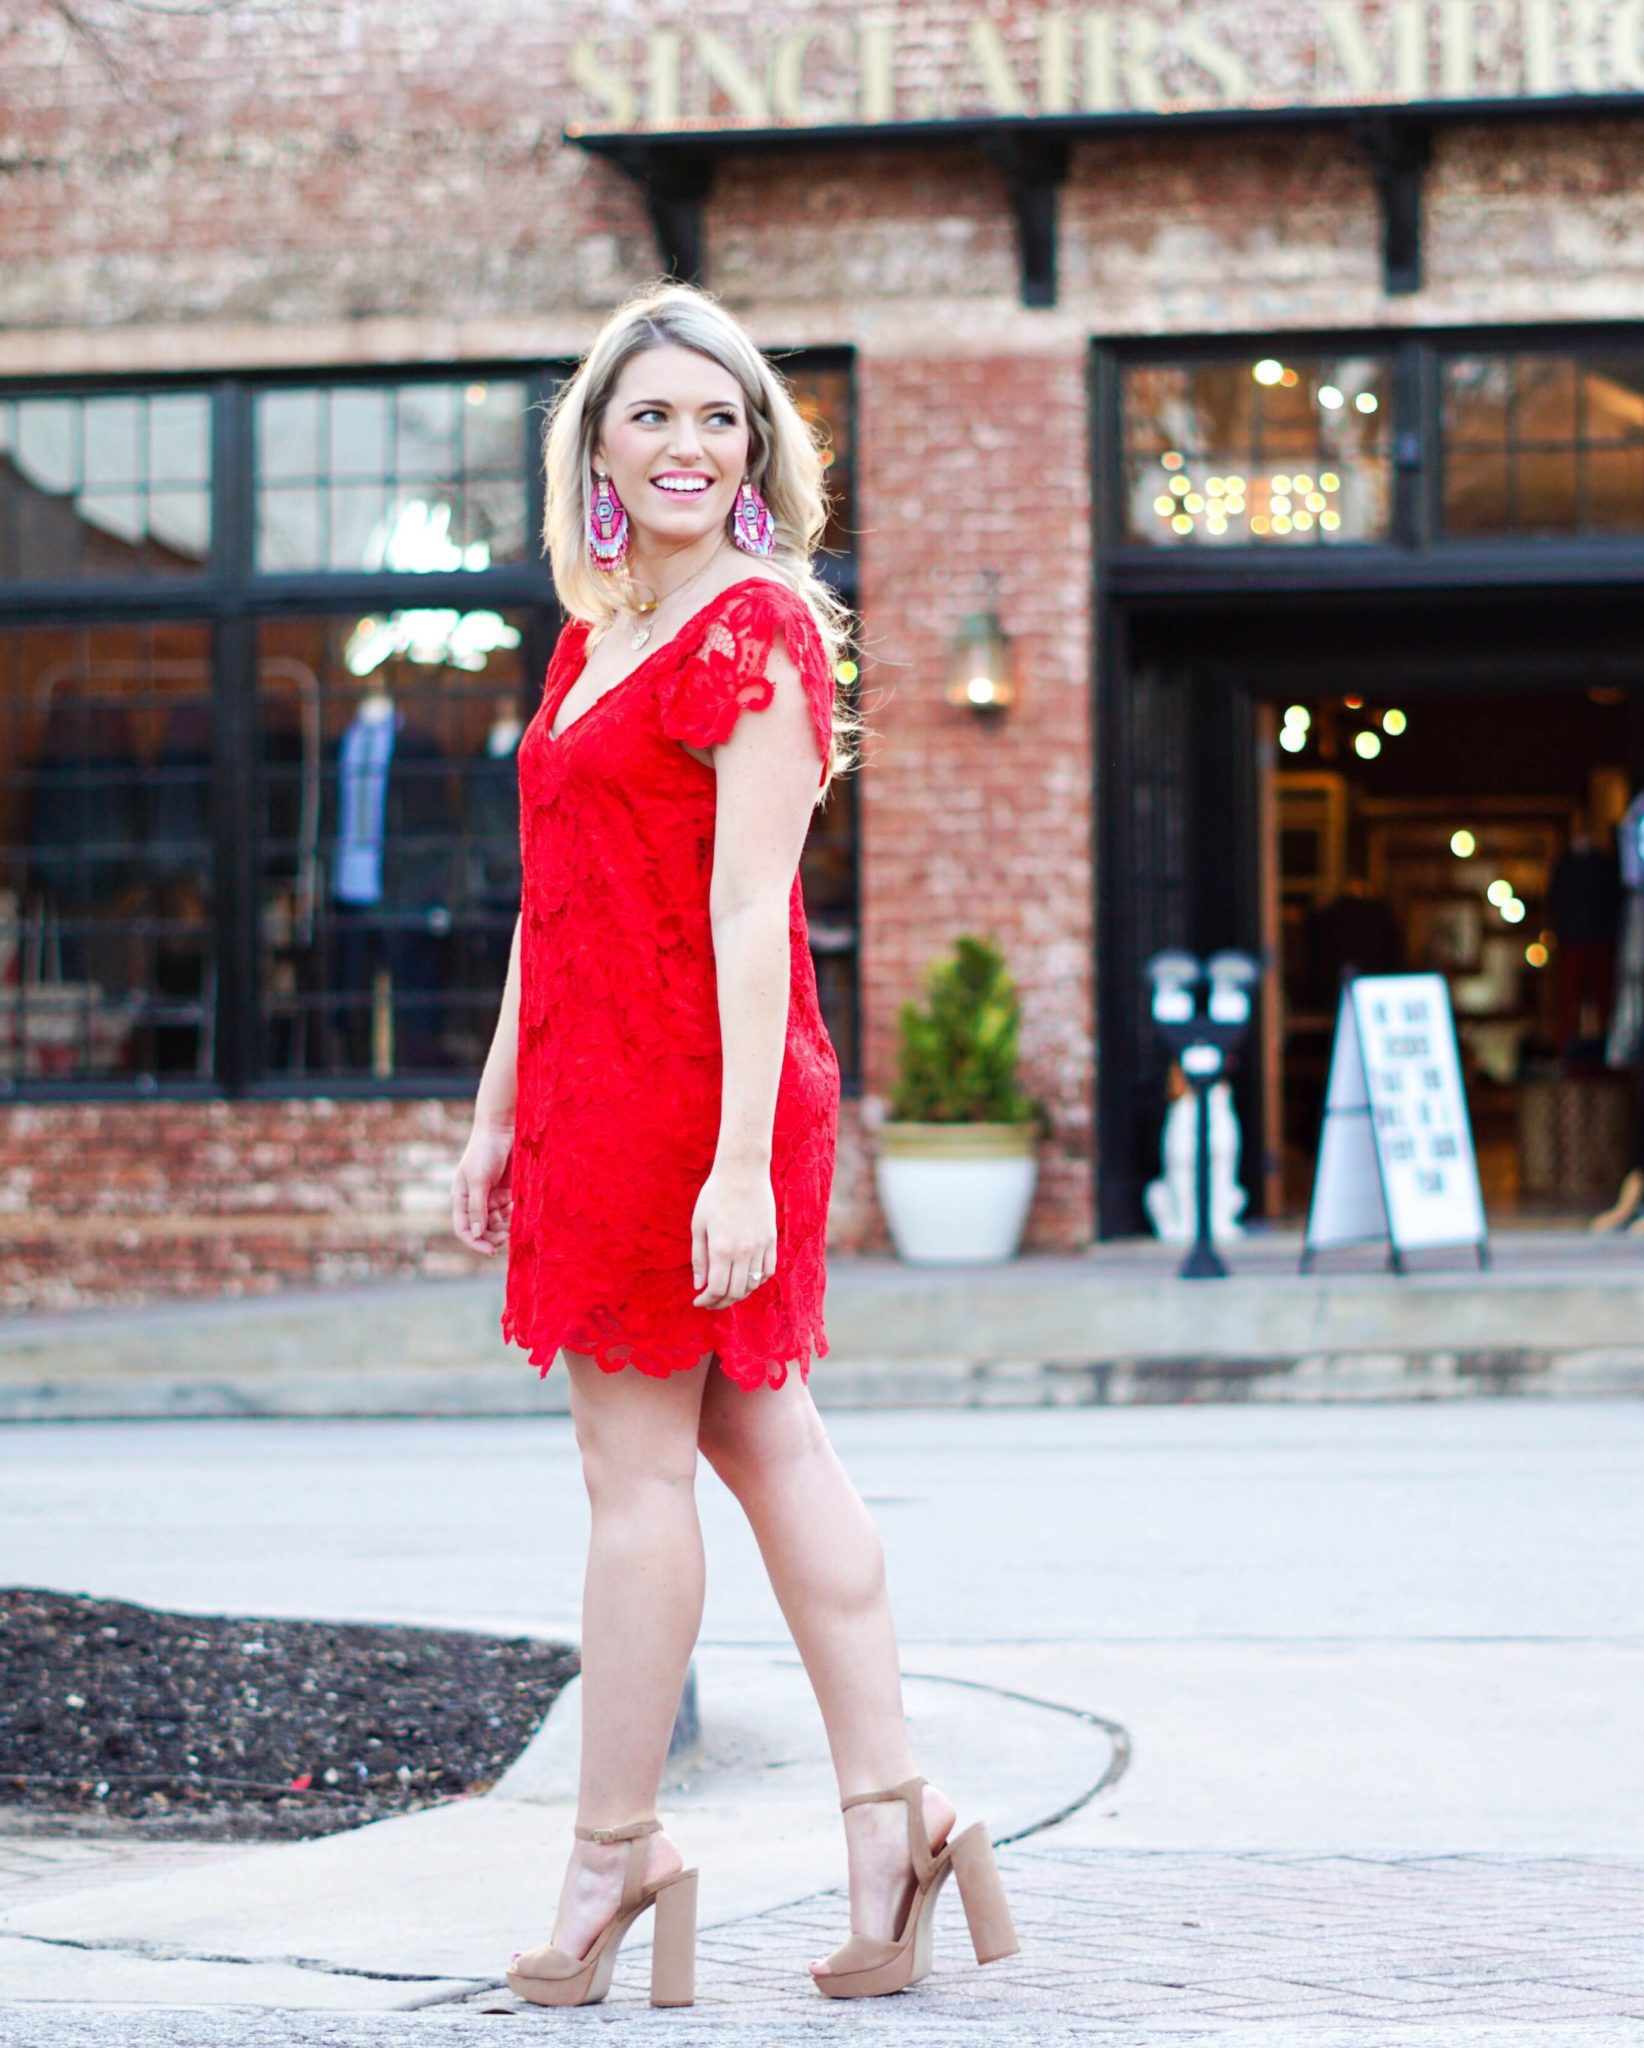 morganbullard.com valentine's day outfit inspiration, little red dress